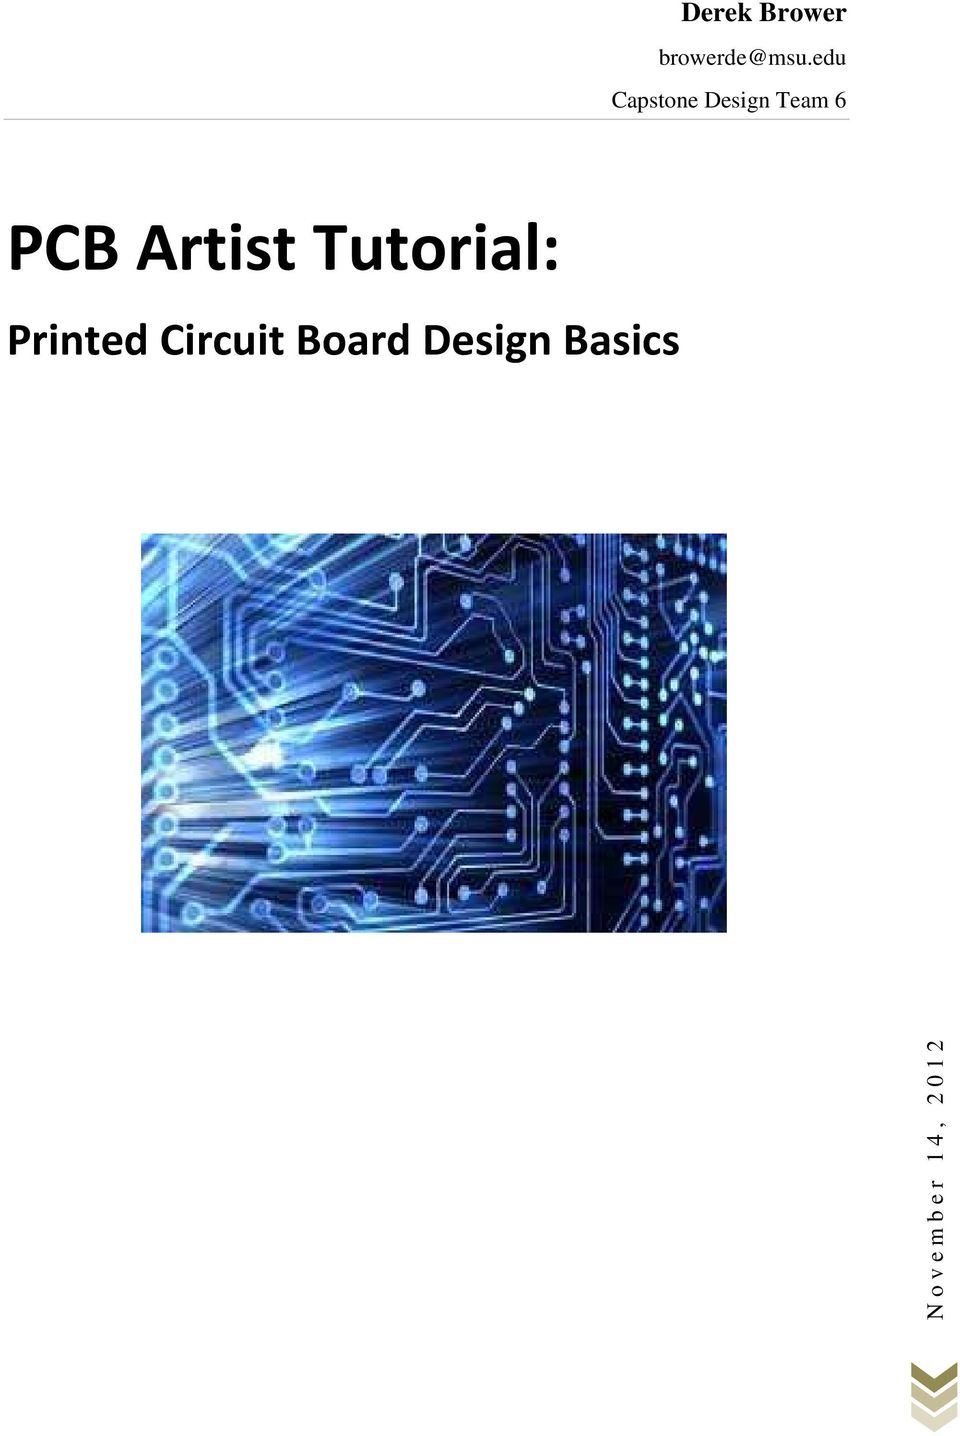 Artist Tutorial: Printed Circuit